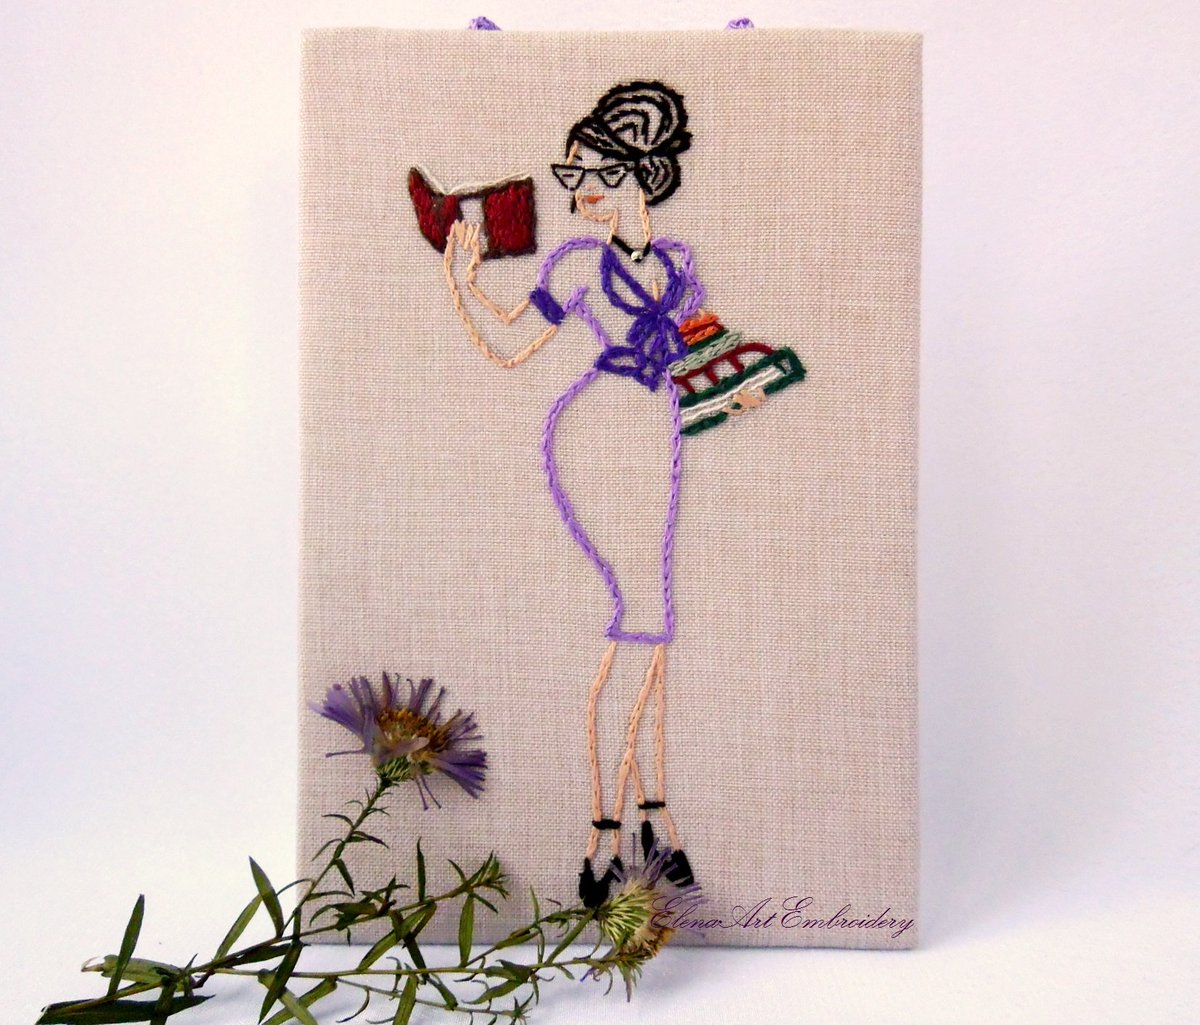 Art Embroidery On Twitter Embroidery Art Modern For Women